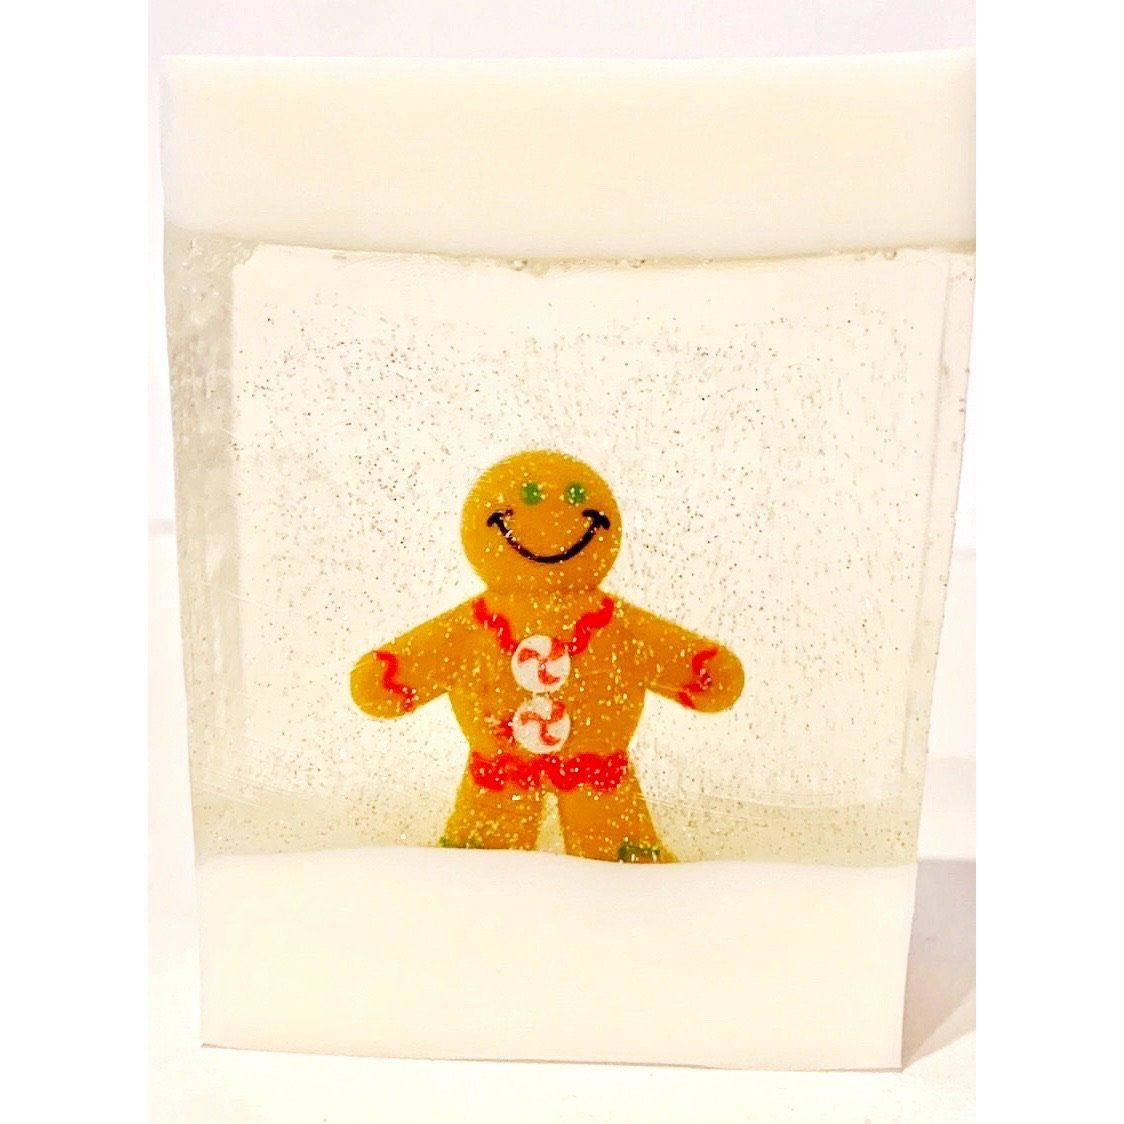 KIDS SOAP - WINTER WONDERLAND BATH TOY, BATH, Crafted Bath - Bon + Co. Party Studio